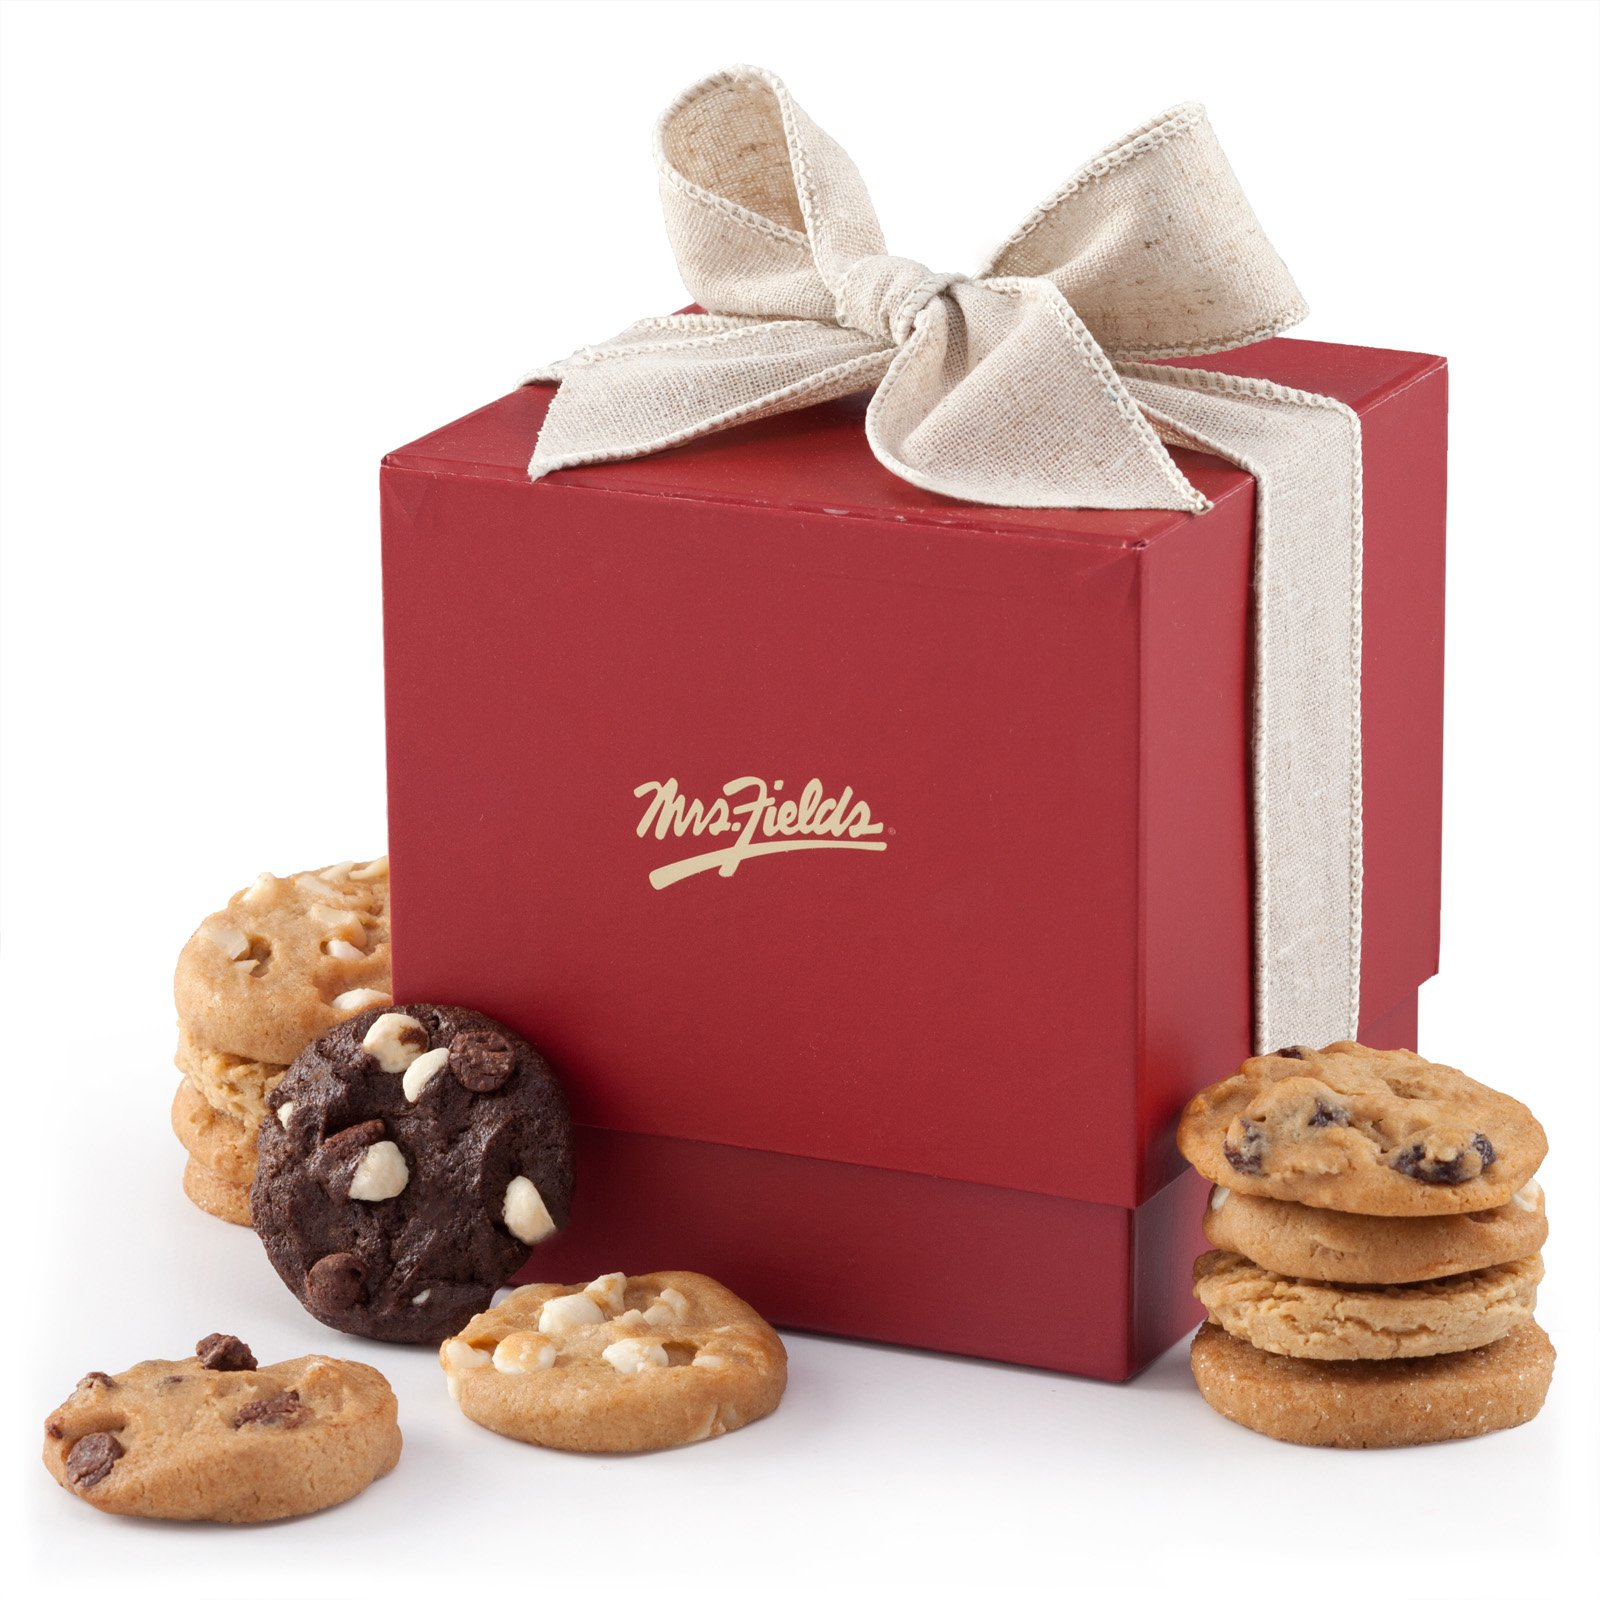 Mrs. Fields Precious Present Gift Box by Mrs. Fields Gifts Inc